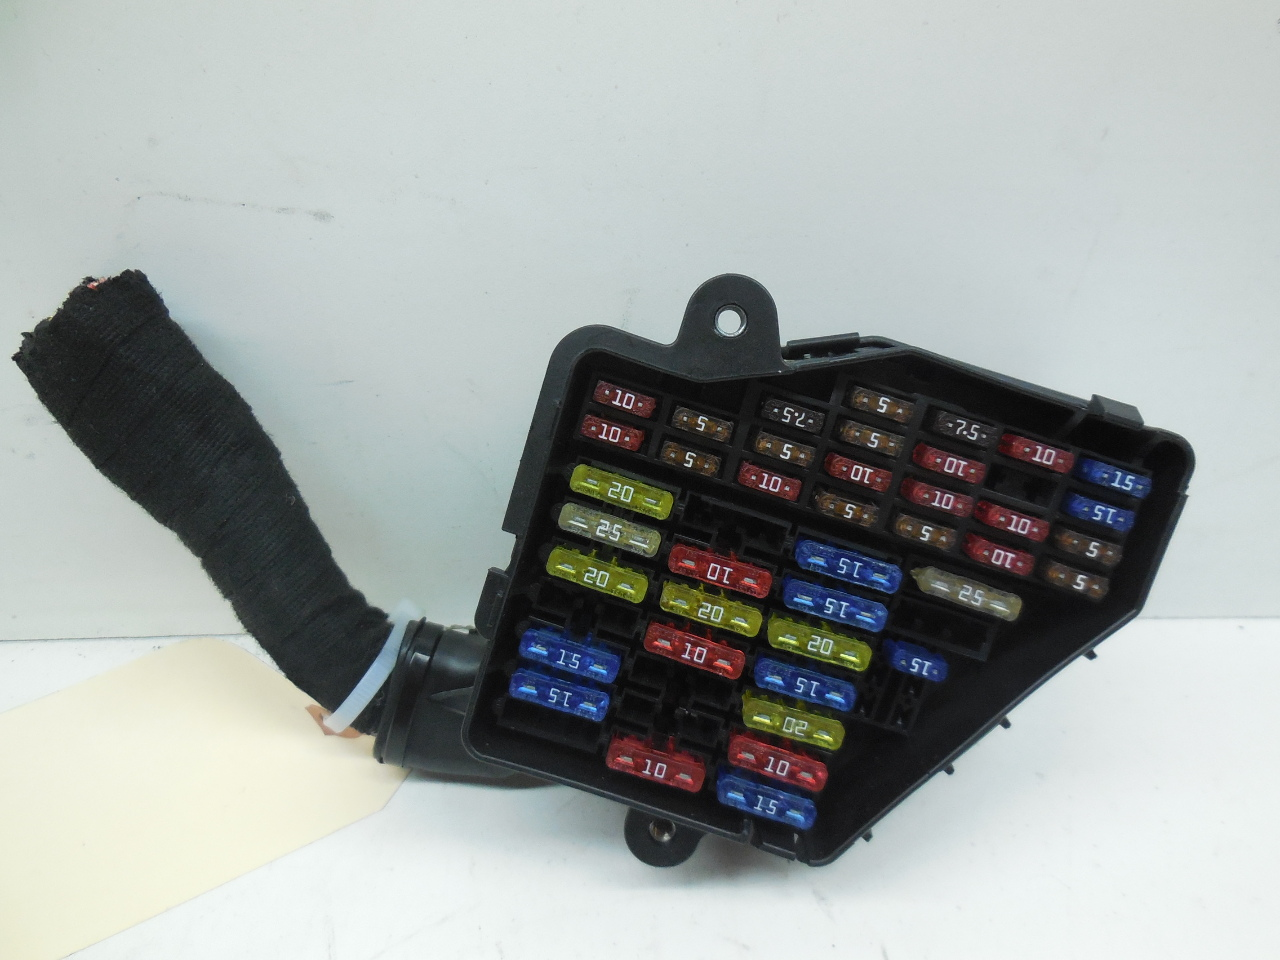 2004 audi tt fuse box relay under fuse box audi tt dash fuse box 00 01 audi tt dash fuse box wire harness ...